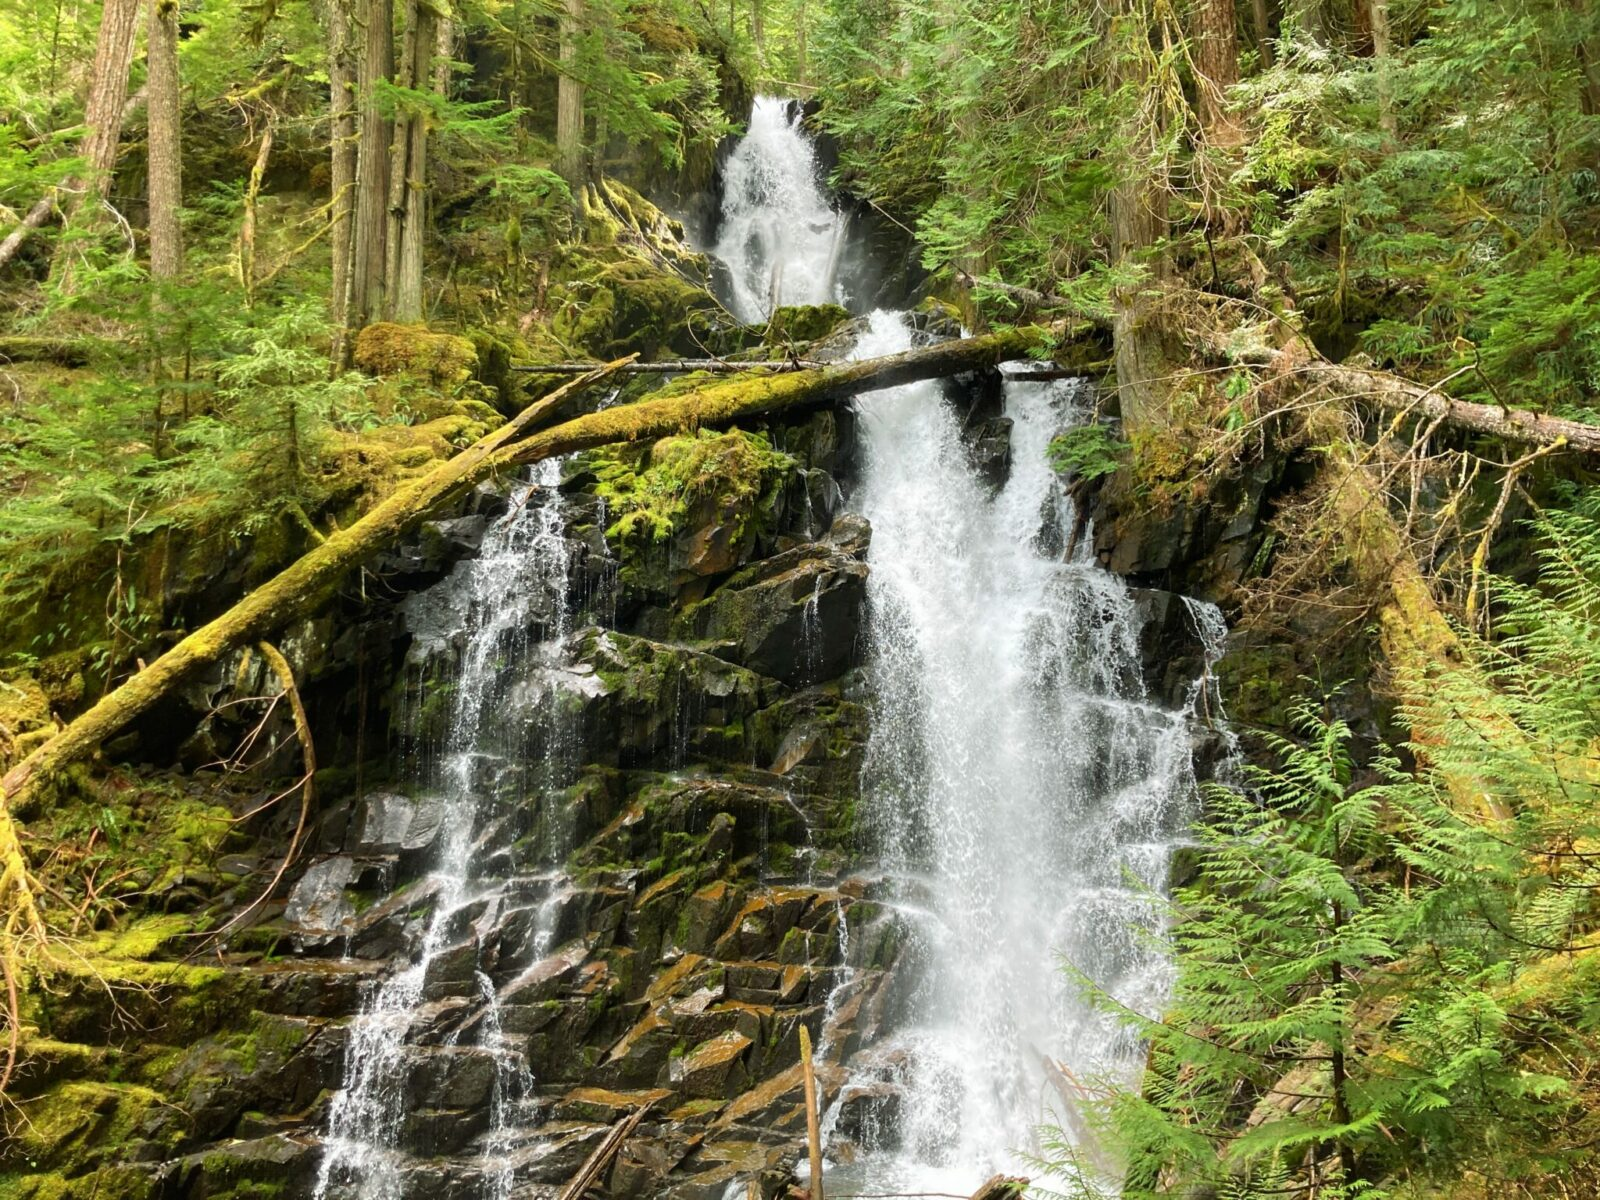 A waterfall tumbles down through an evergreen forest full of moss and ferns. About halfway down, the waterfall splits into two falls.